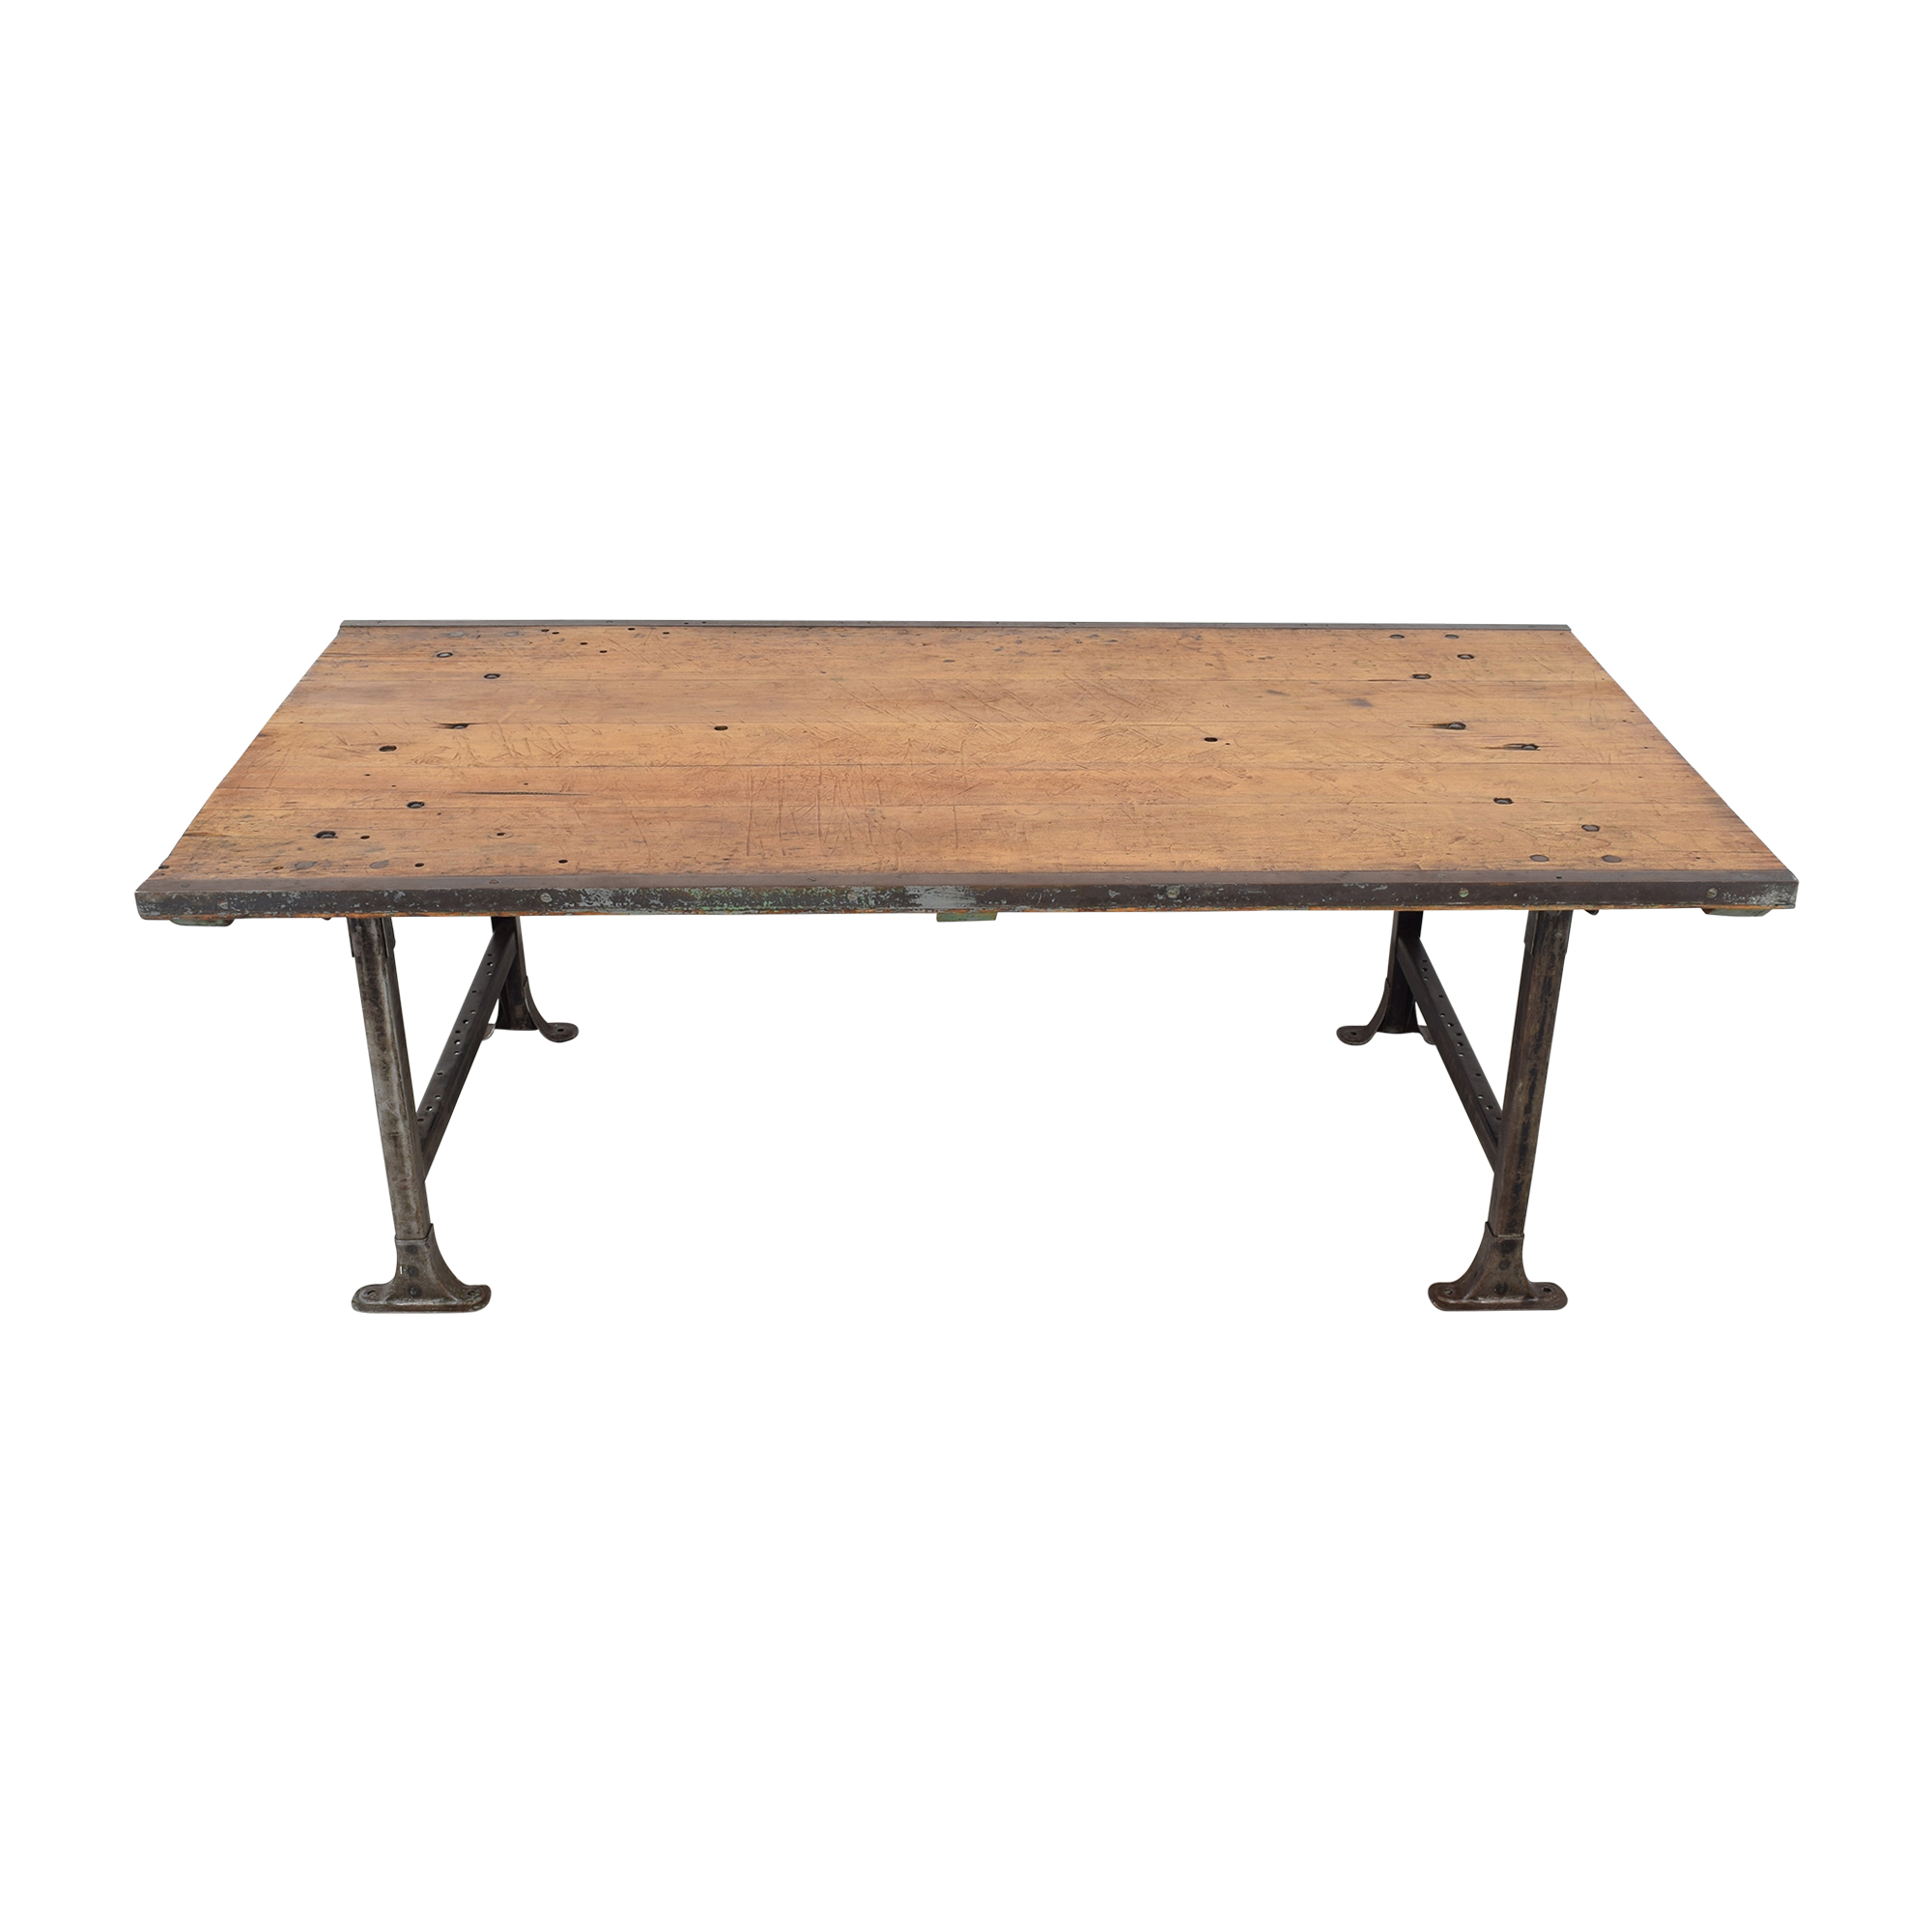 buy ABC Carpet & Home Vintage Industrial Dining Table ABC Carpet & Home Tables